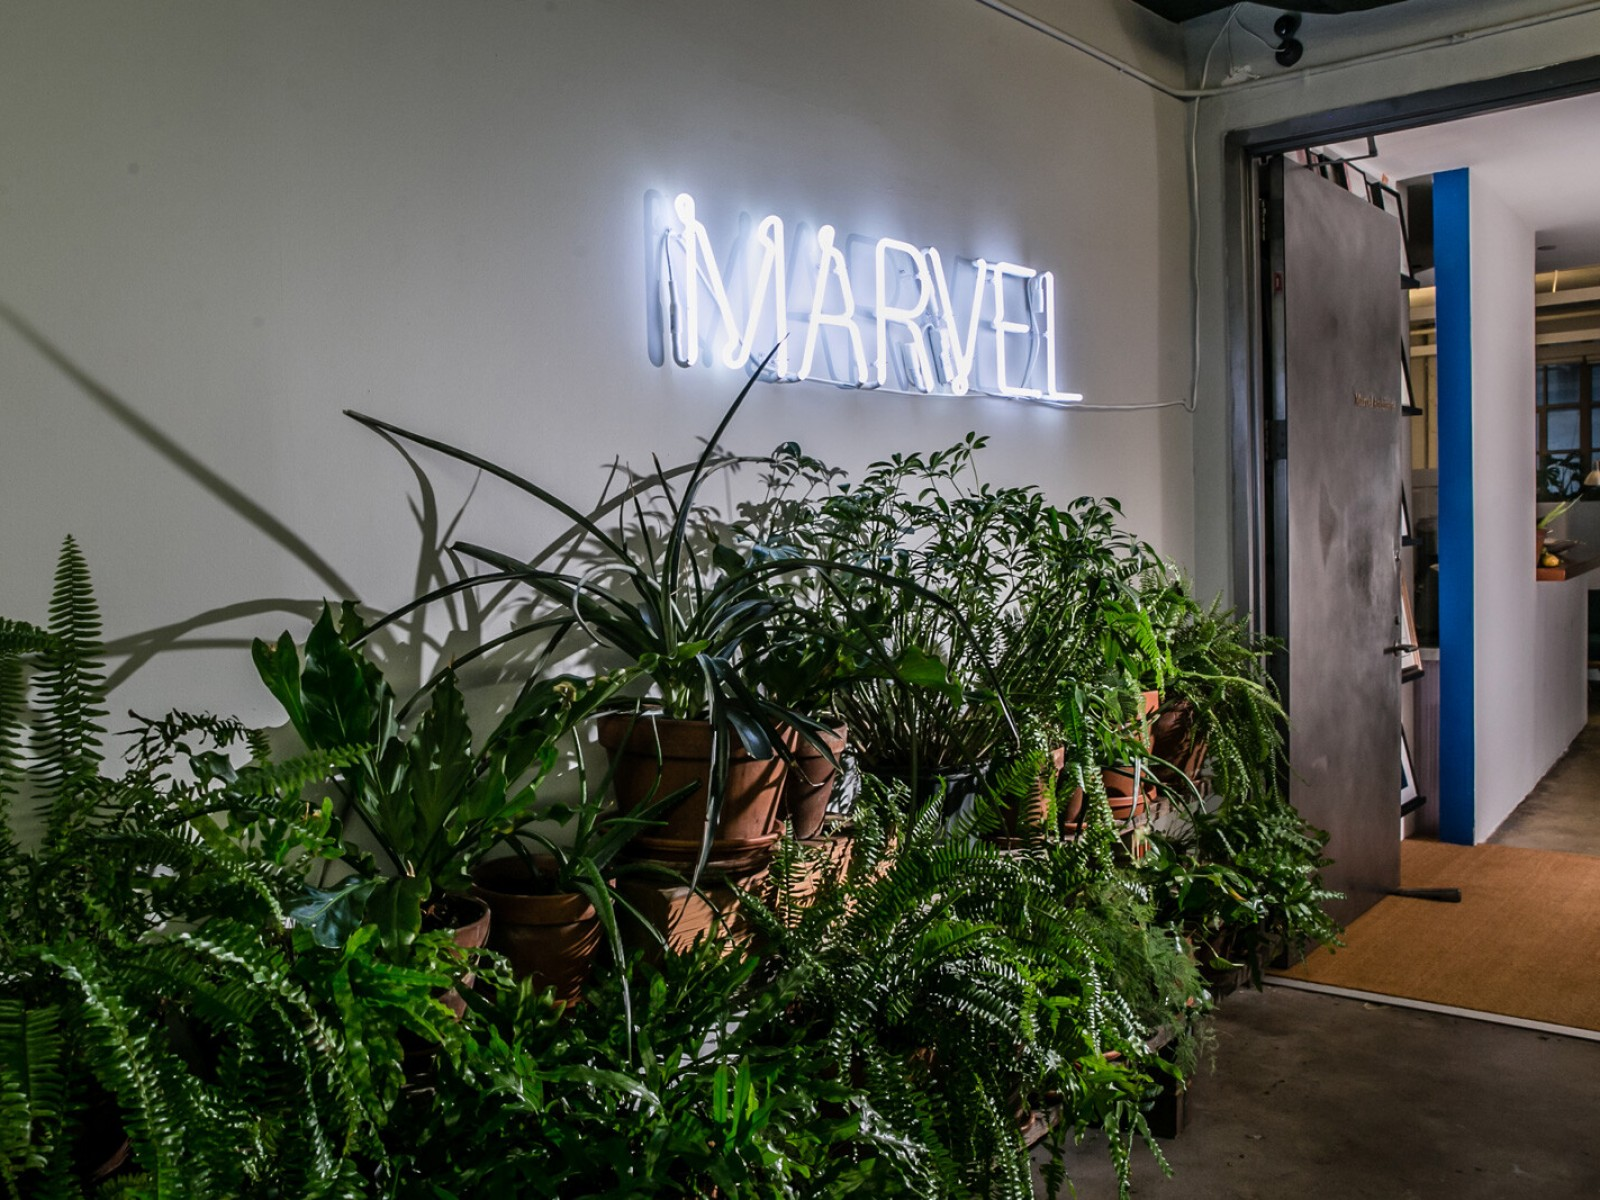 Marvel is a solutions-driven design practice, Marvel integrates context and nature into every project. Marvel meets each design challenge by listening to its surroundings.